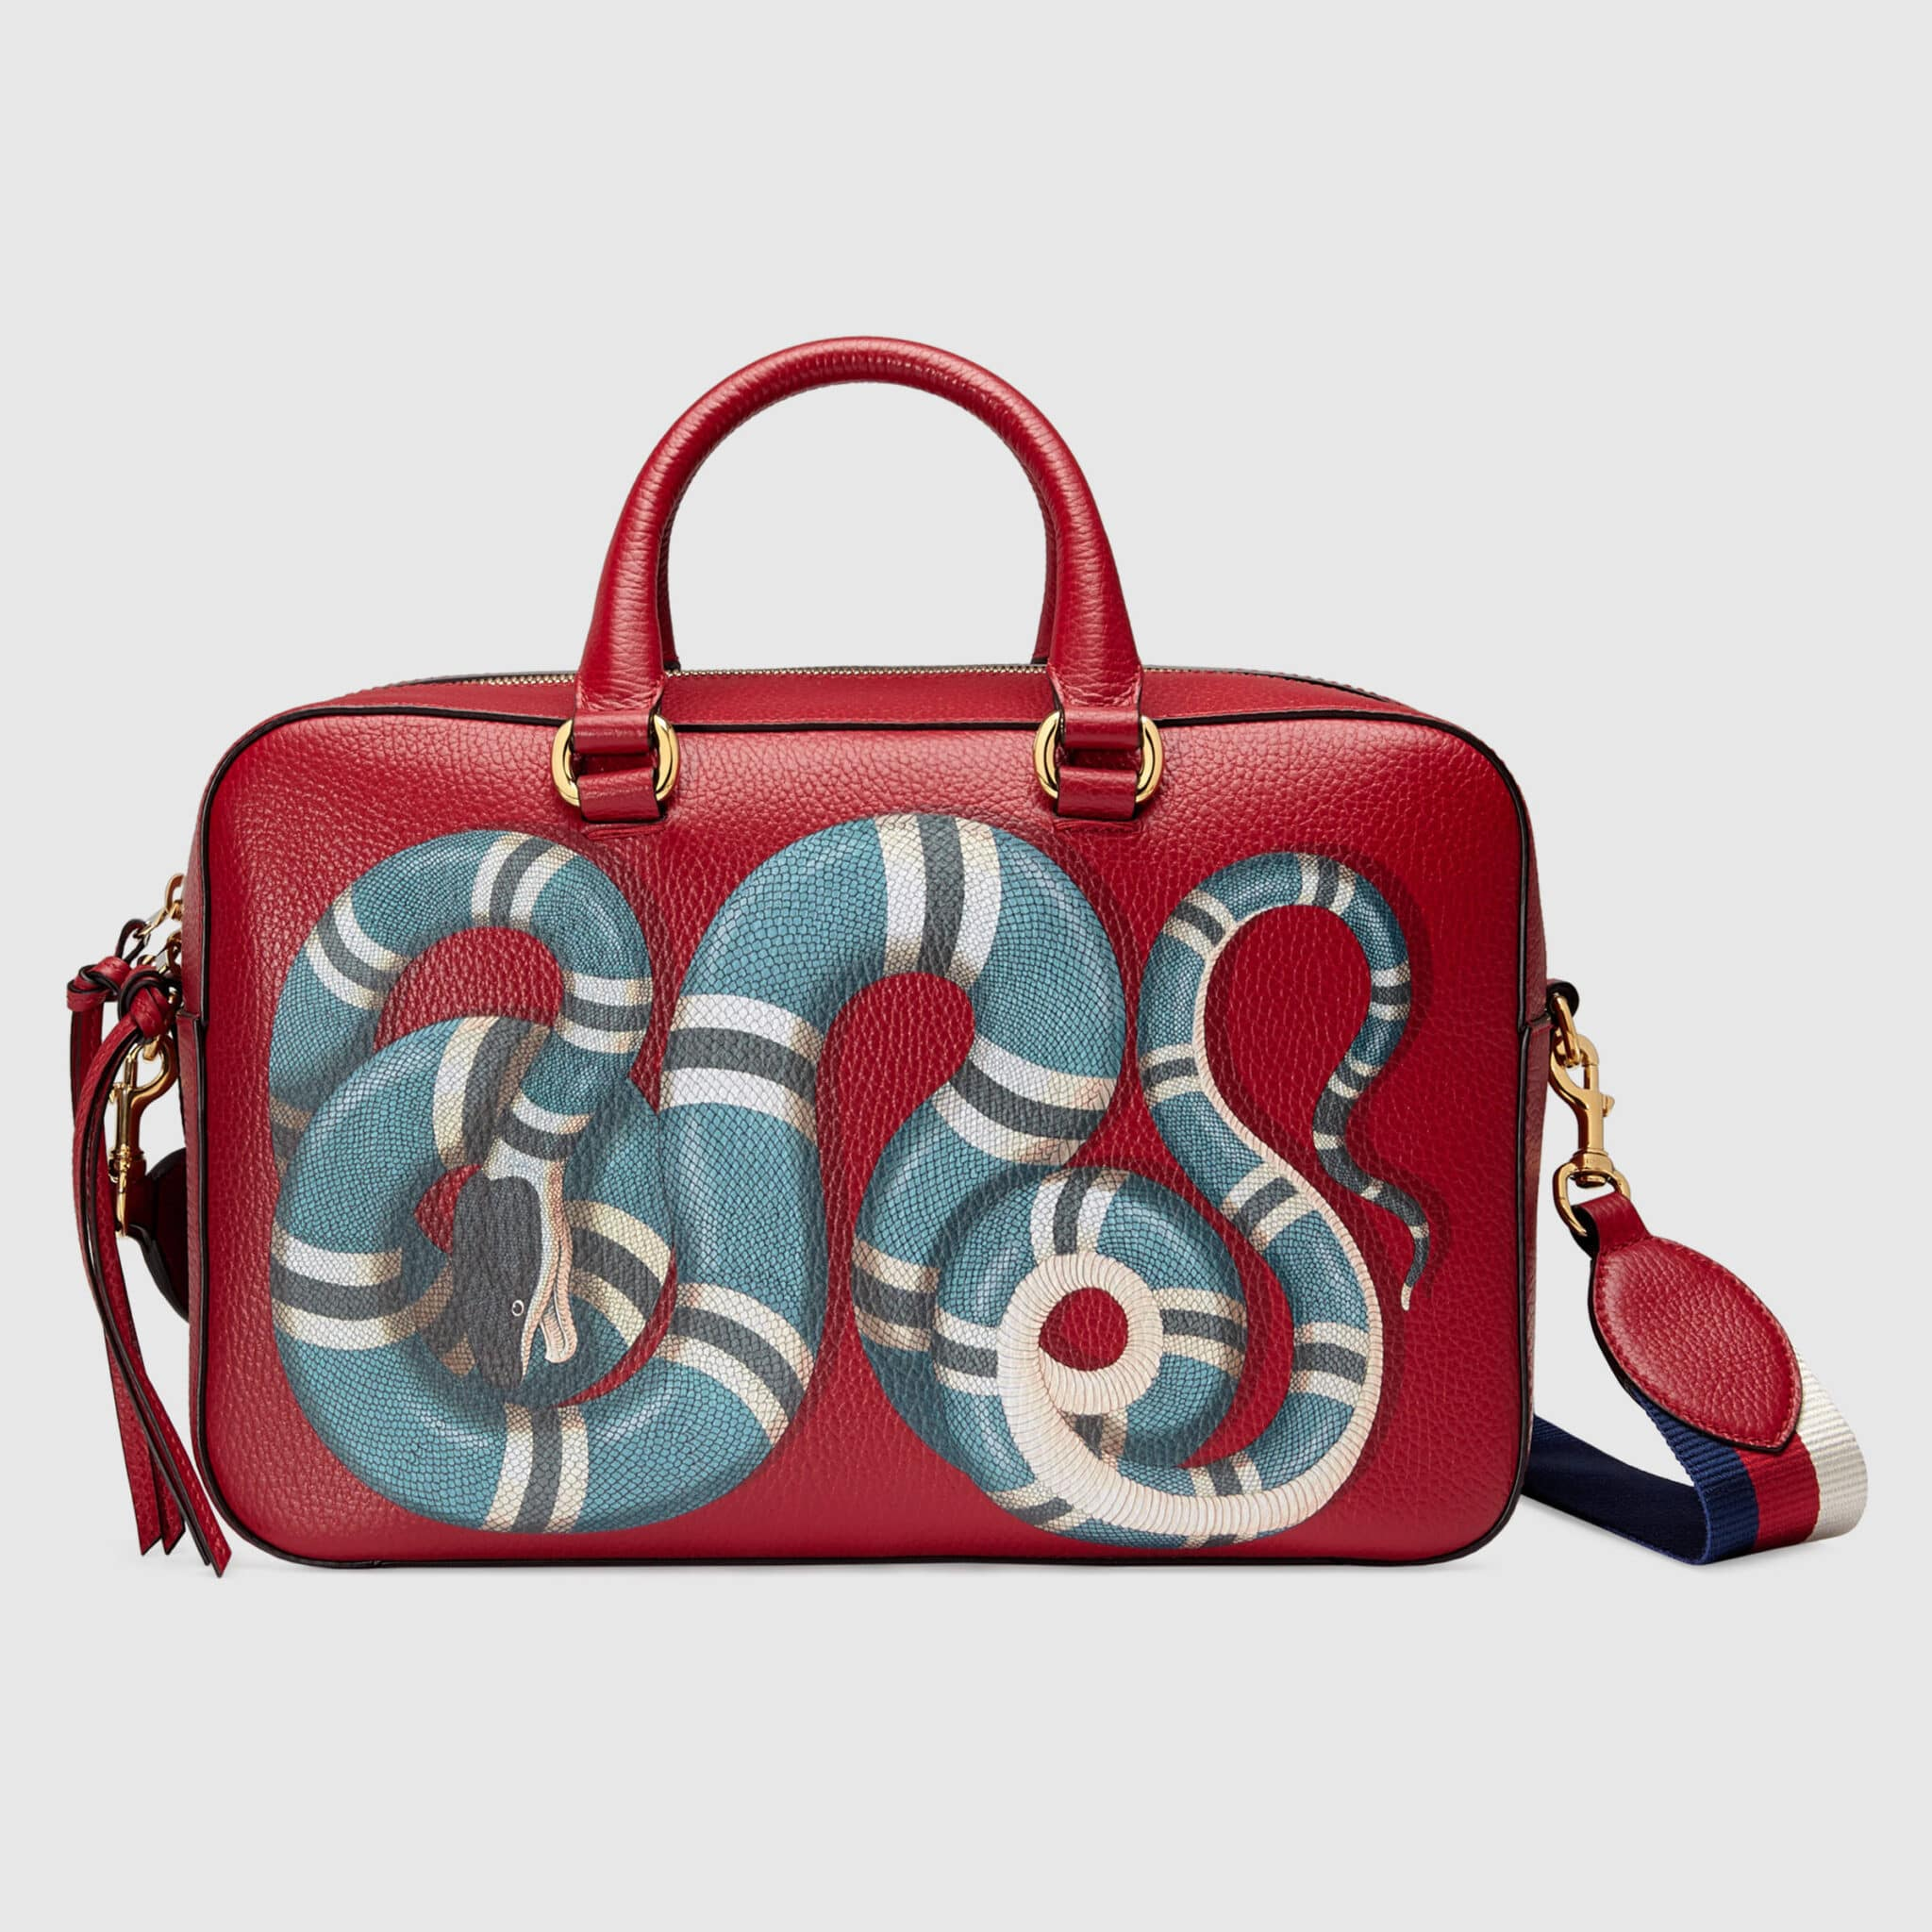 Gucci Gift Guide 2016 – Spotted Fashion